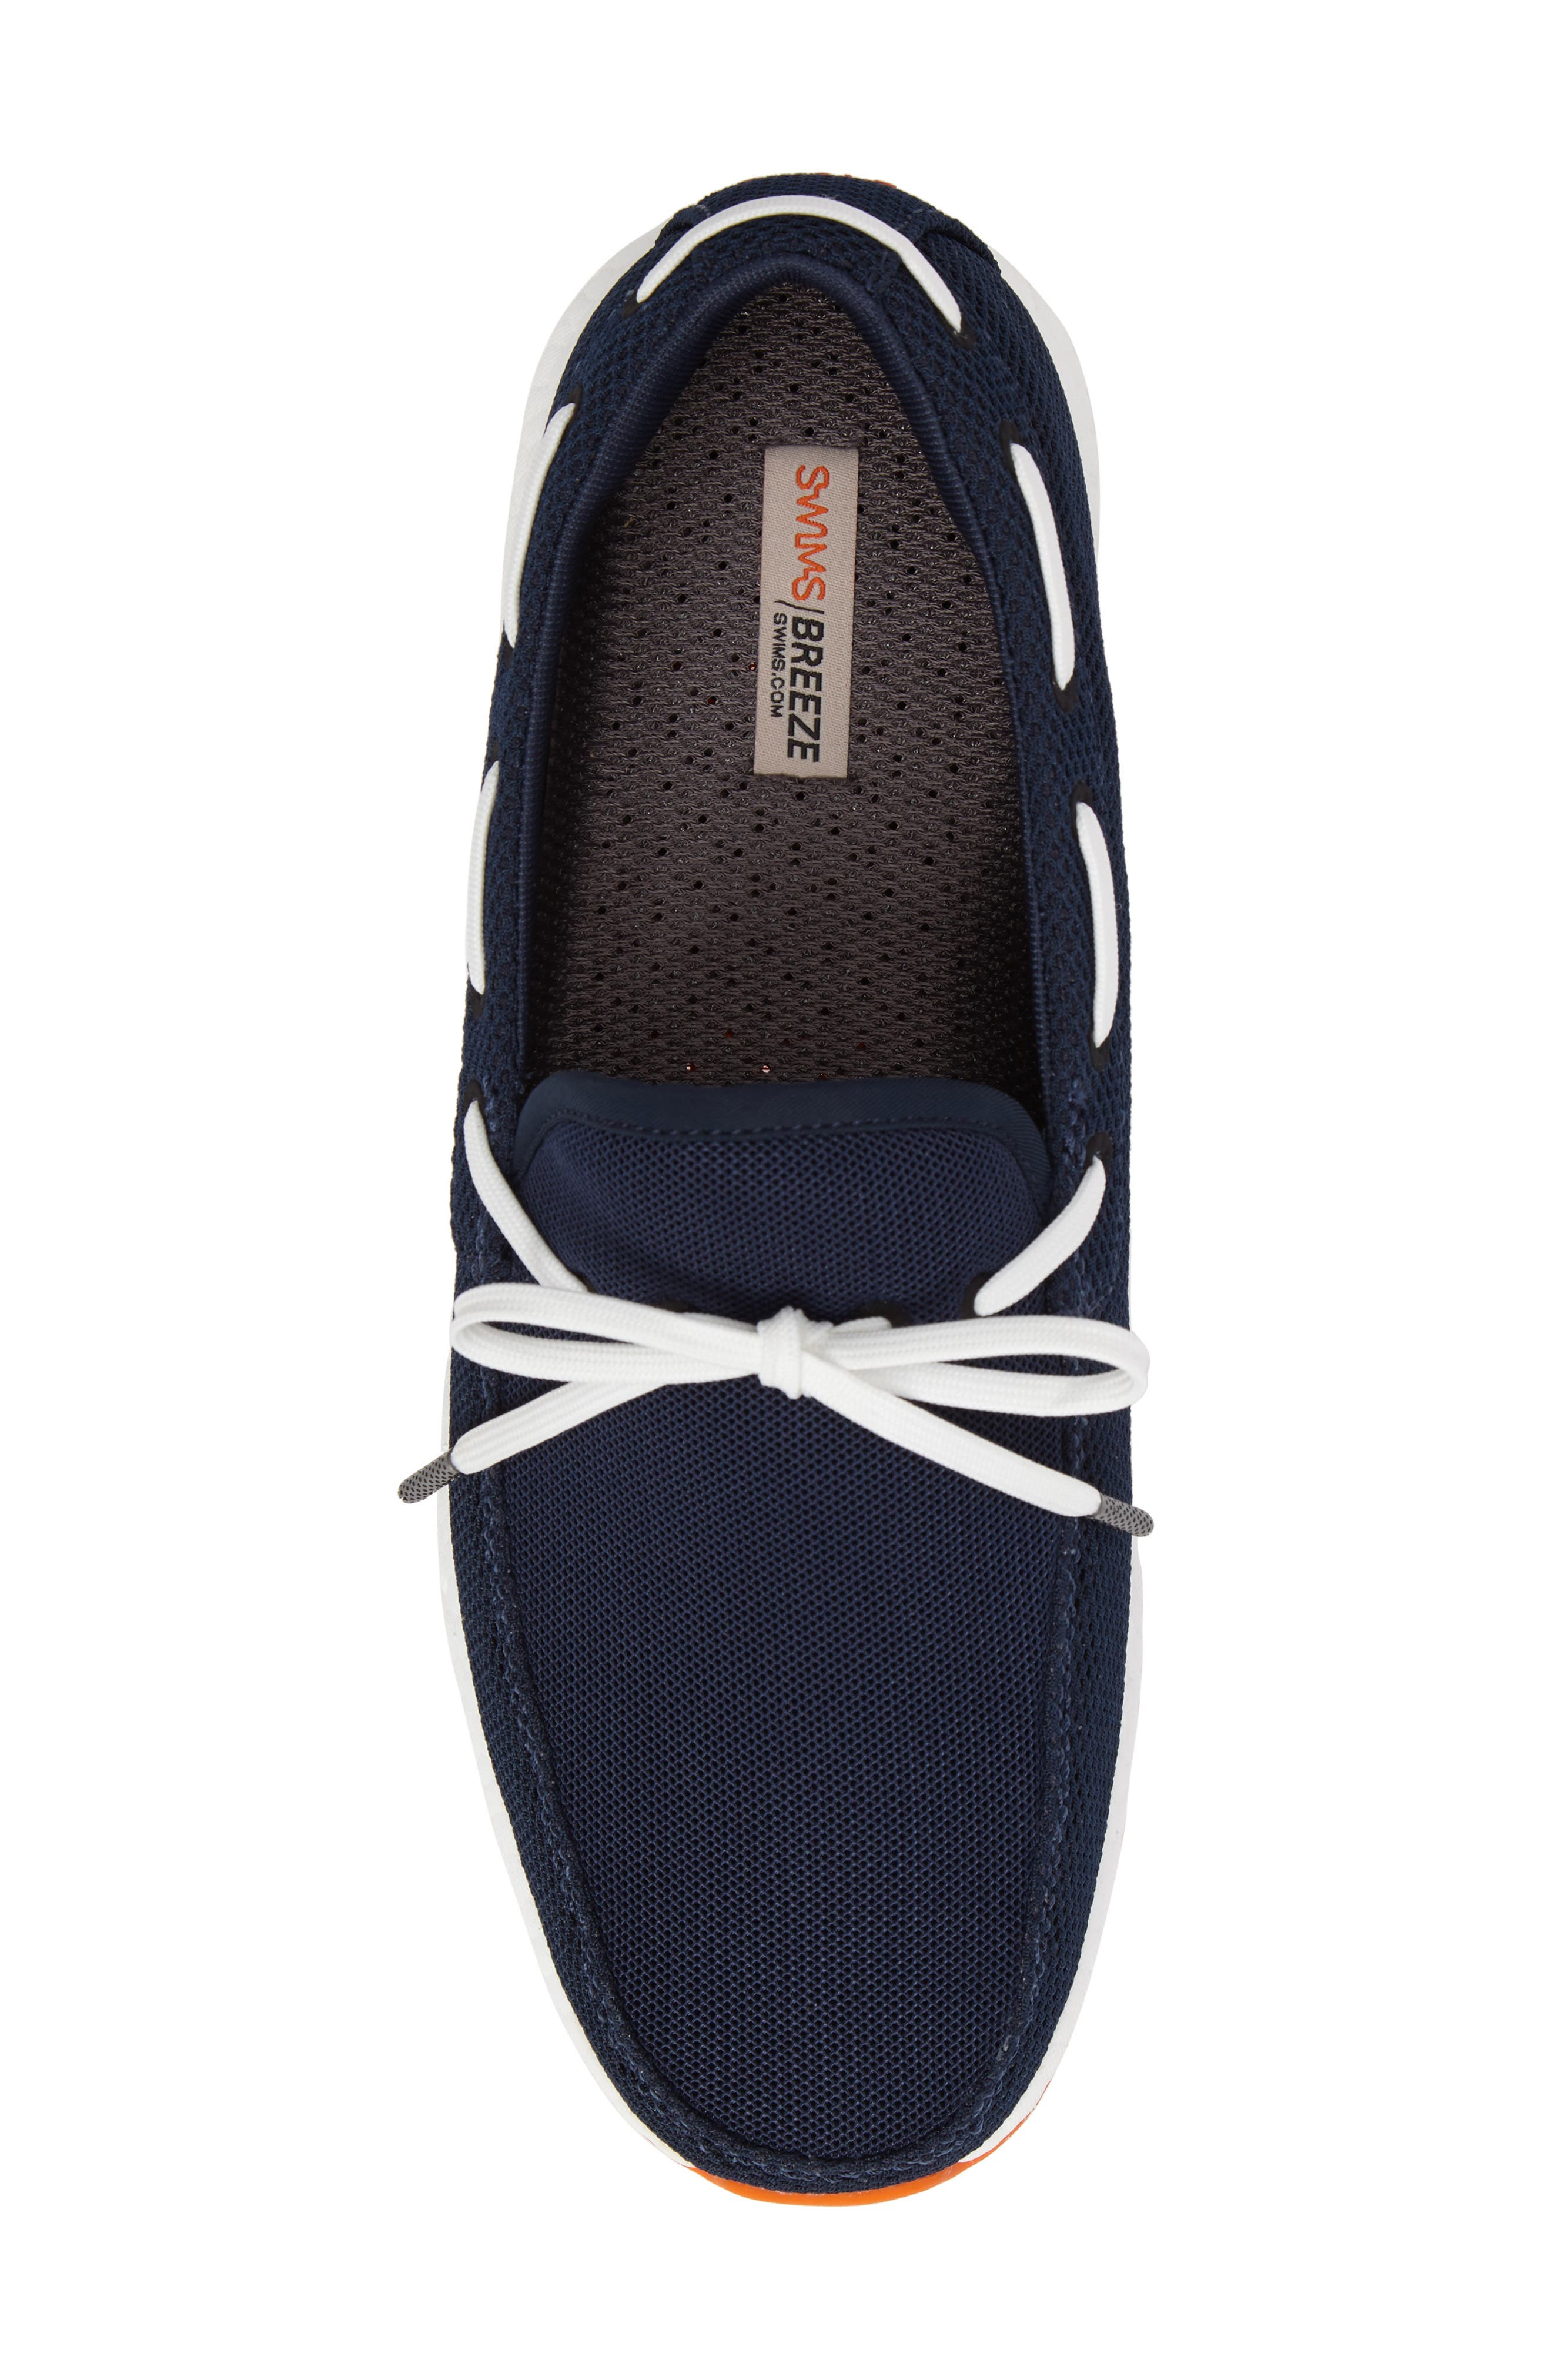 Breeze Loafer,                             Alternate thumbnail 5, color,                             Navy/ Orange Fabric